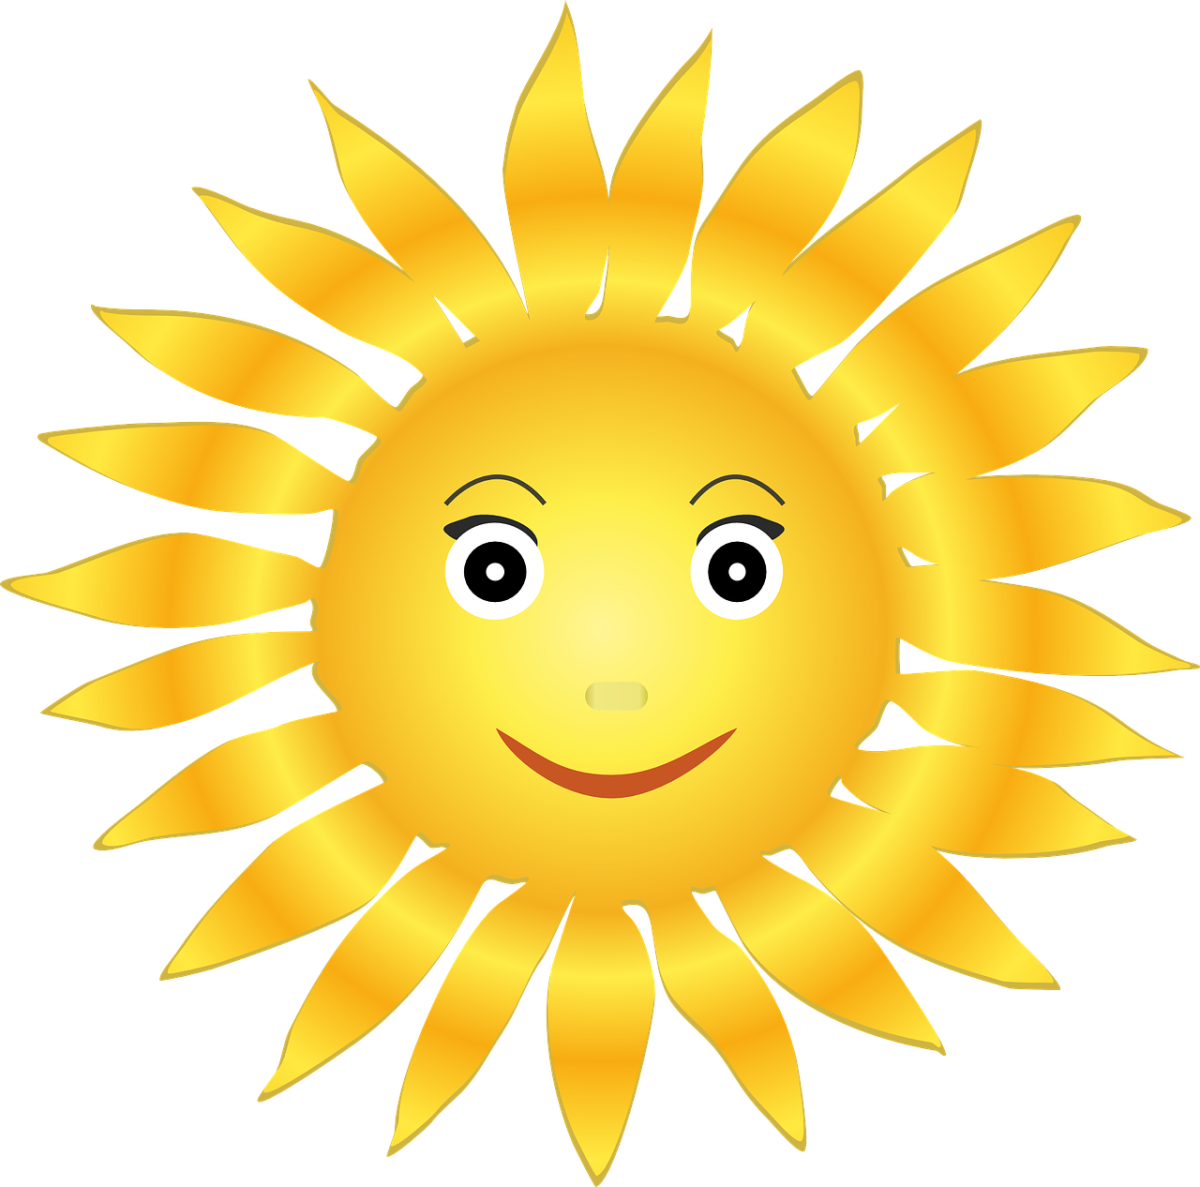 I chose this sun because it looks like a lady's face. While the sun is often associated with masculine energies in modern times, many ancient cultures saw the sun as feminine, or a combination of both energies.